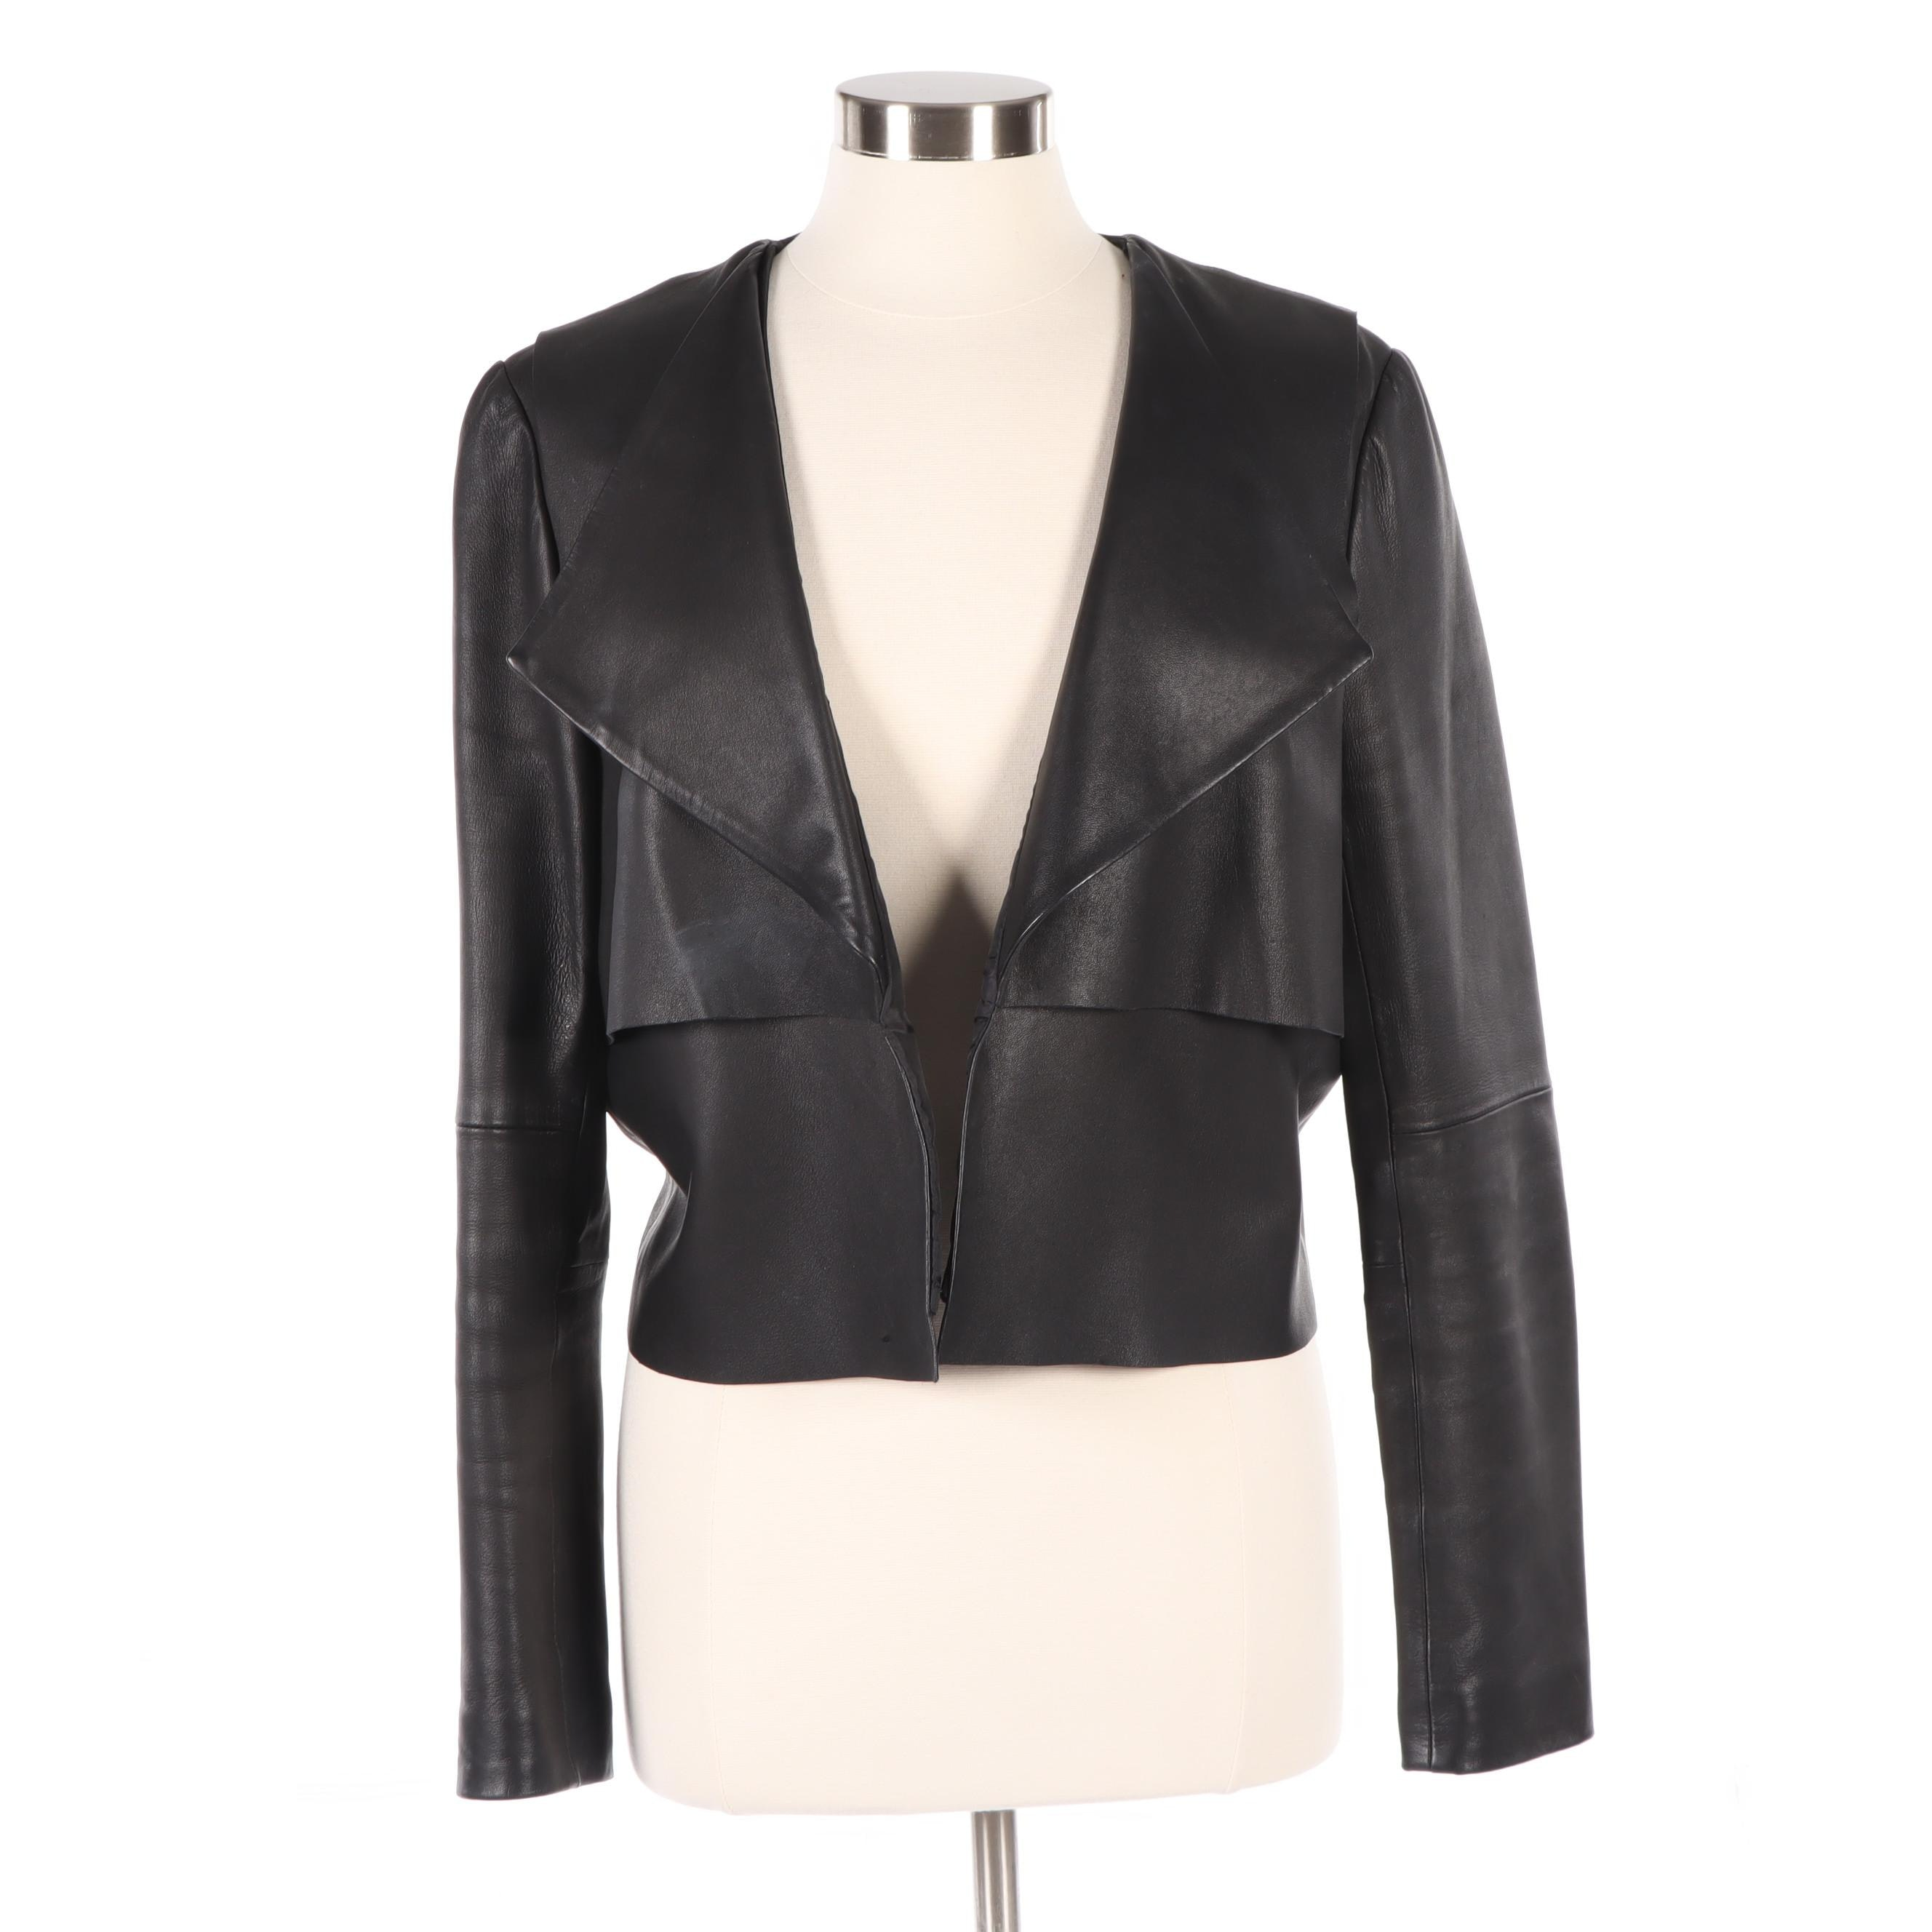 Kate Spade Saturday Black Grained Leather Jacket